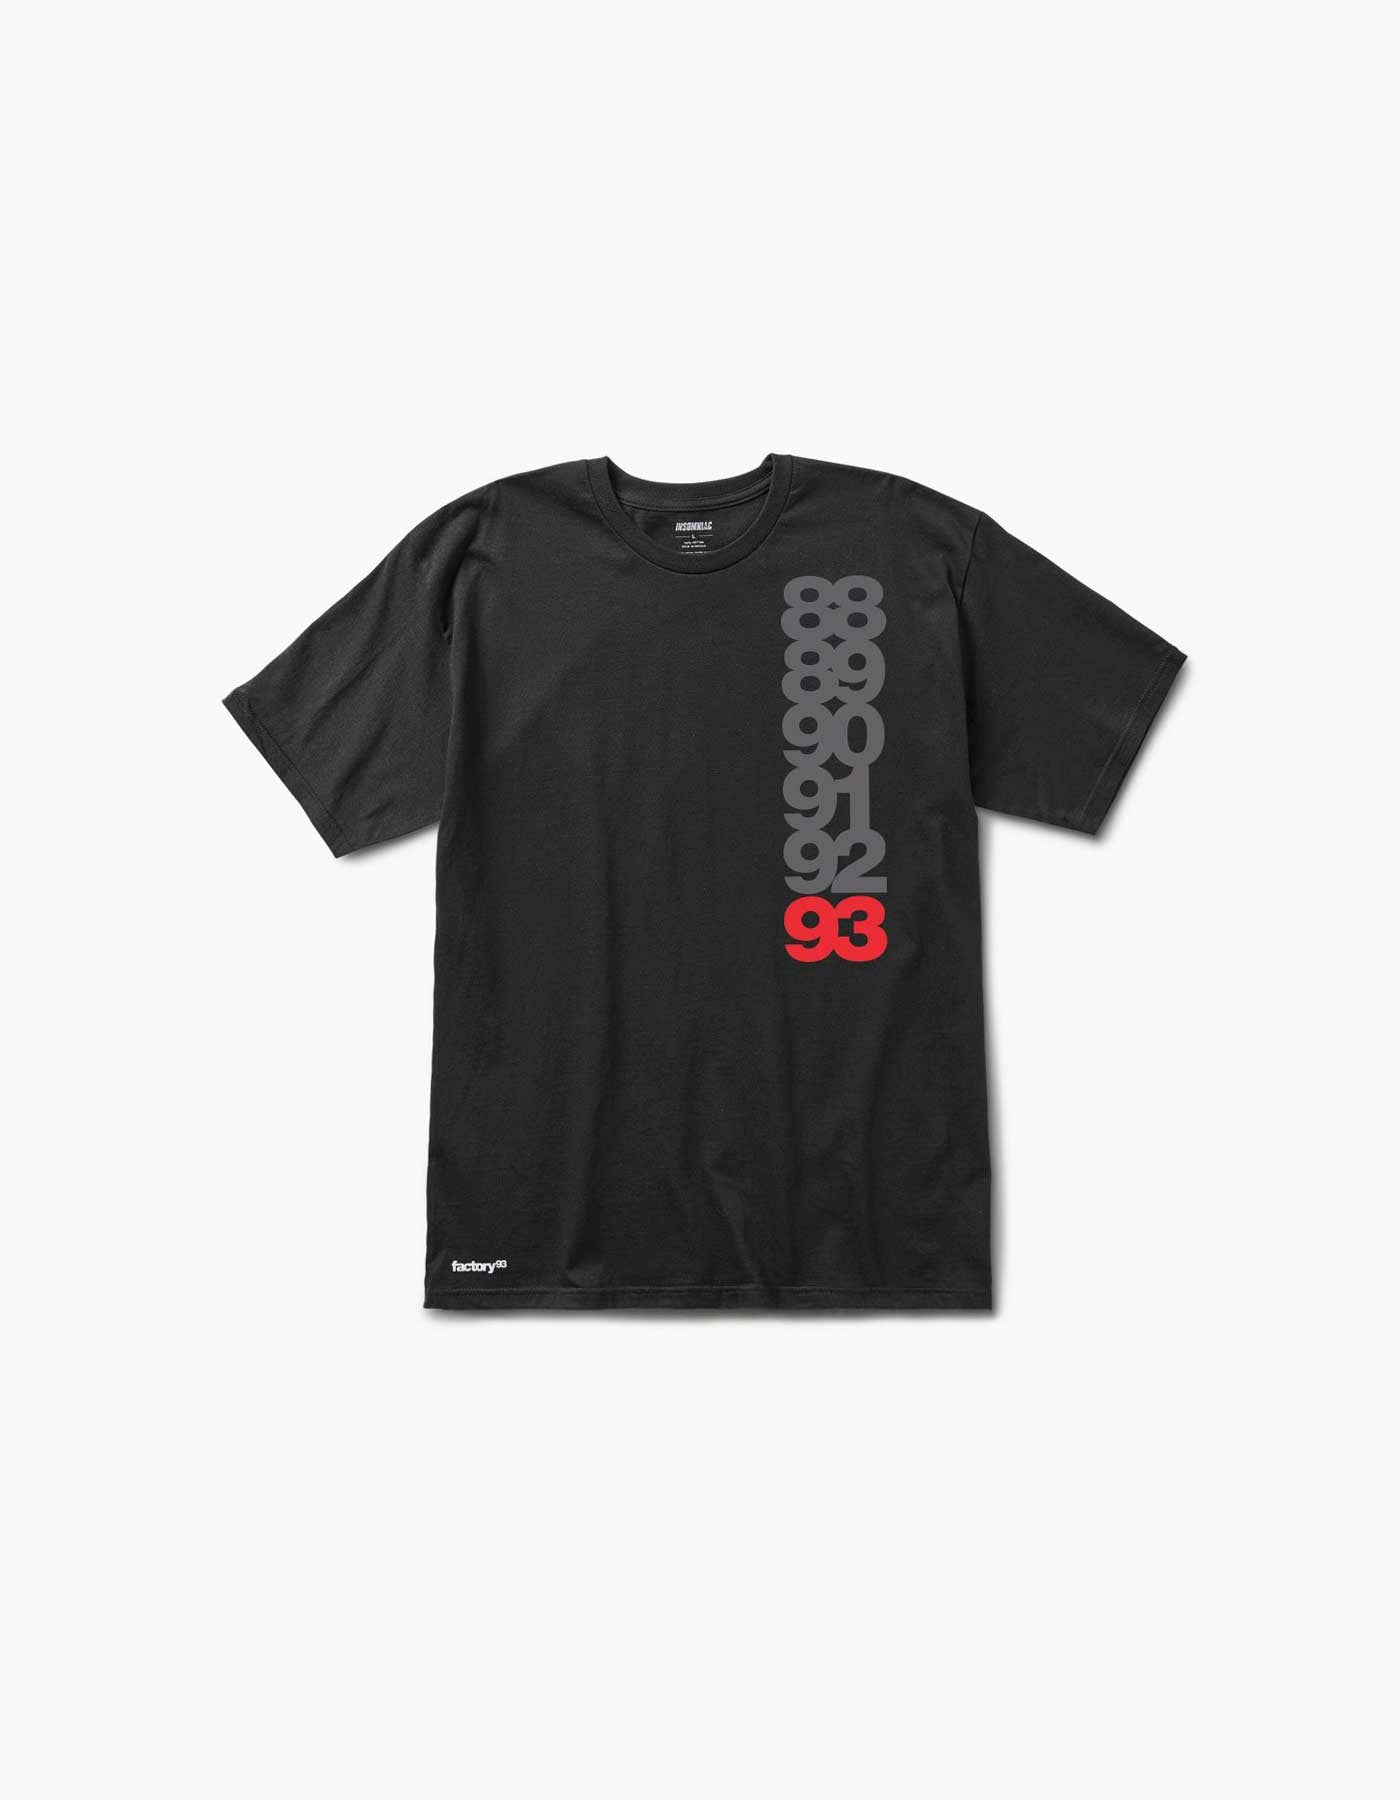 Factory 93 Numbered Tee